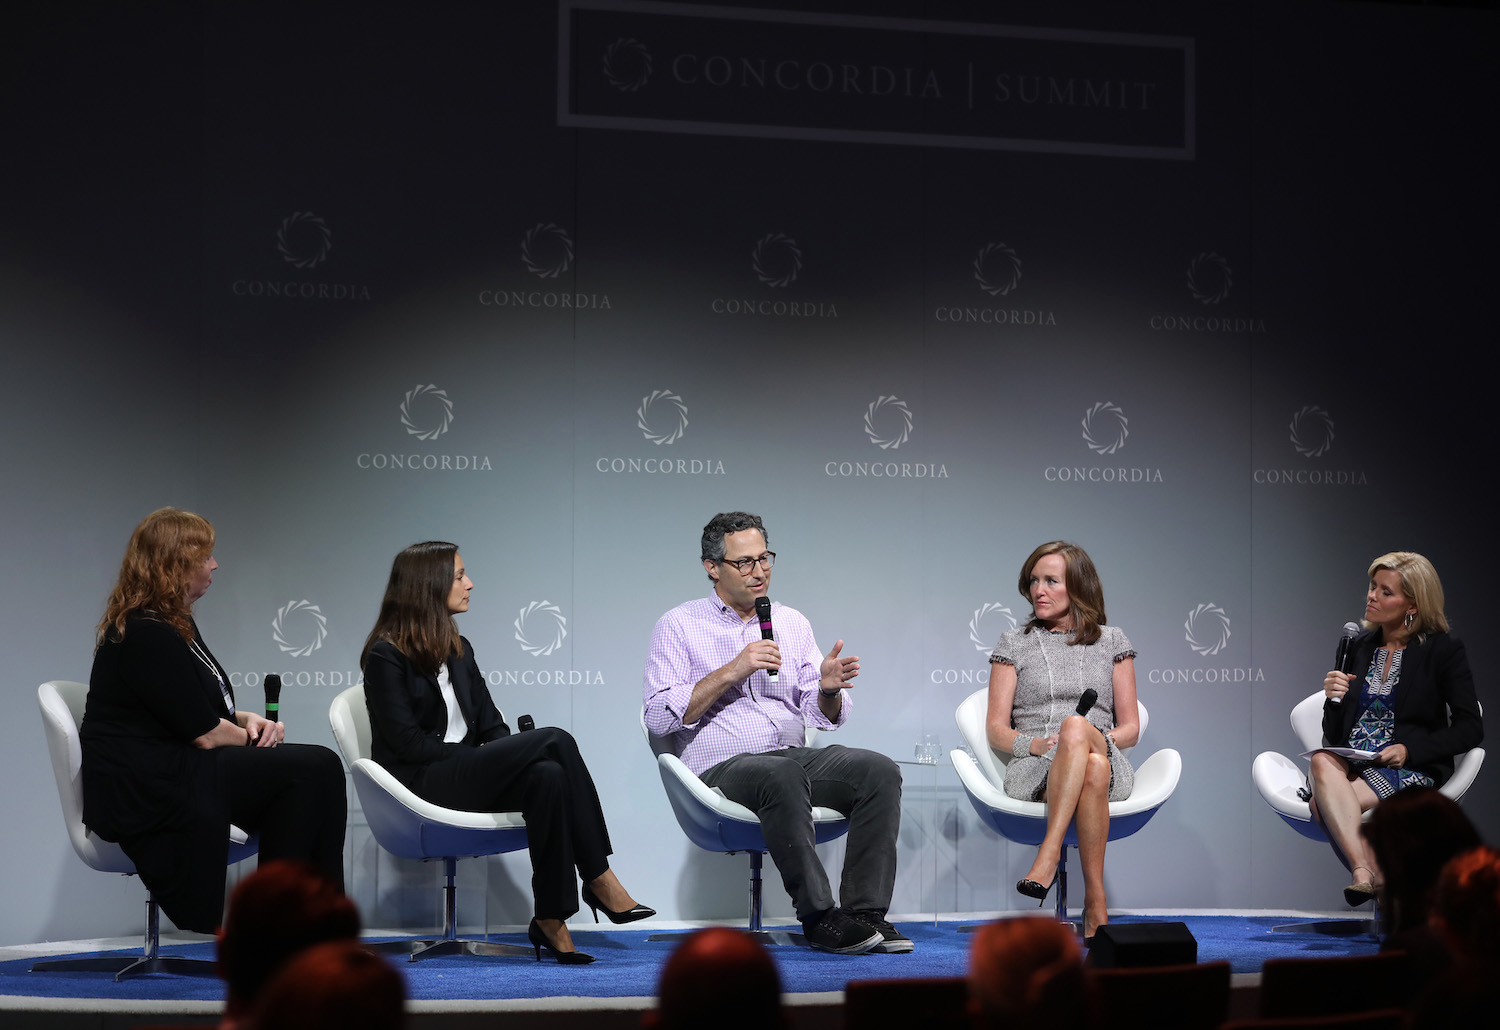 Heather Jassy, Laura Fuentes, Jeff Glueck, Kathleen Rice, and Kelly Wallace discuss paid leave at the 2016 Concordia Summit.  Photo by Ben Hider/Getty Images for Concordia Summit